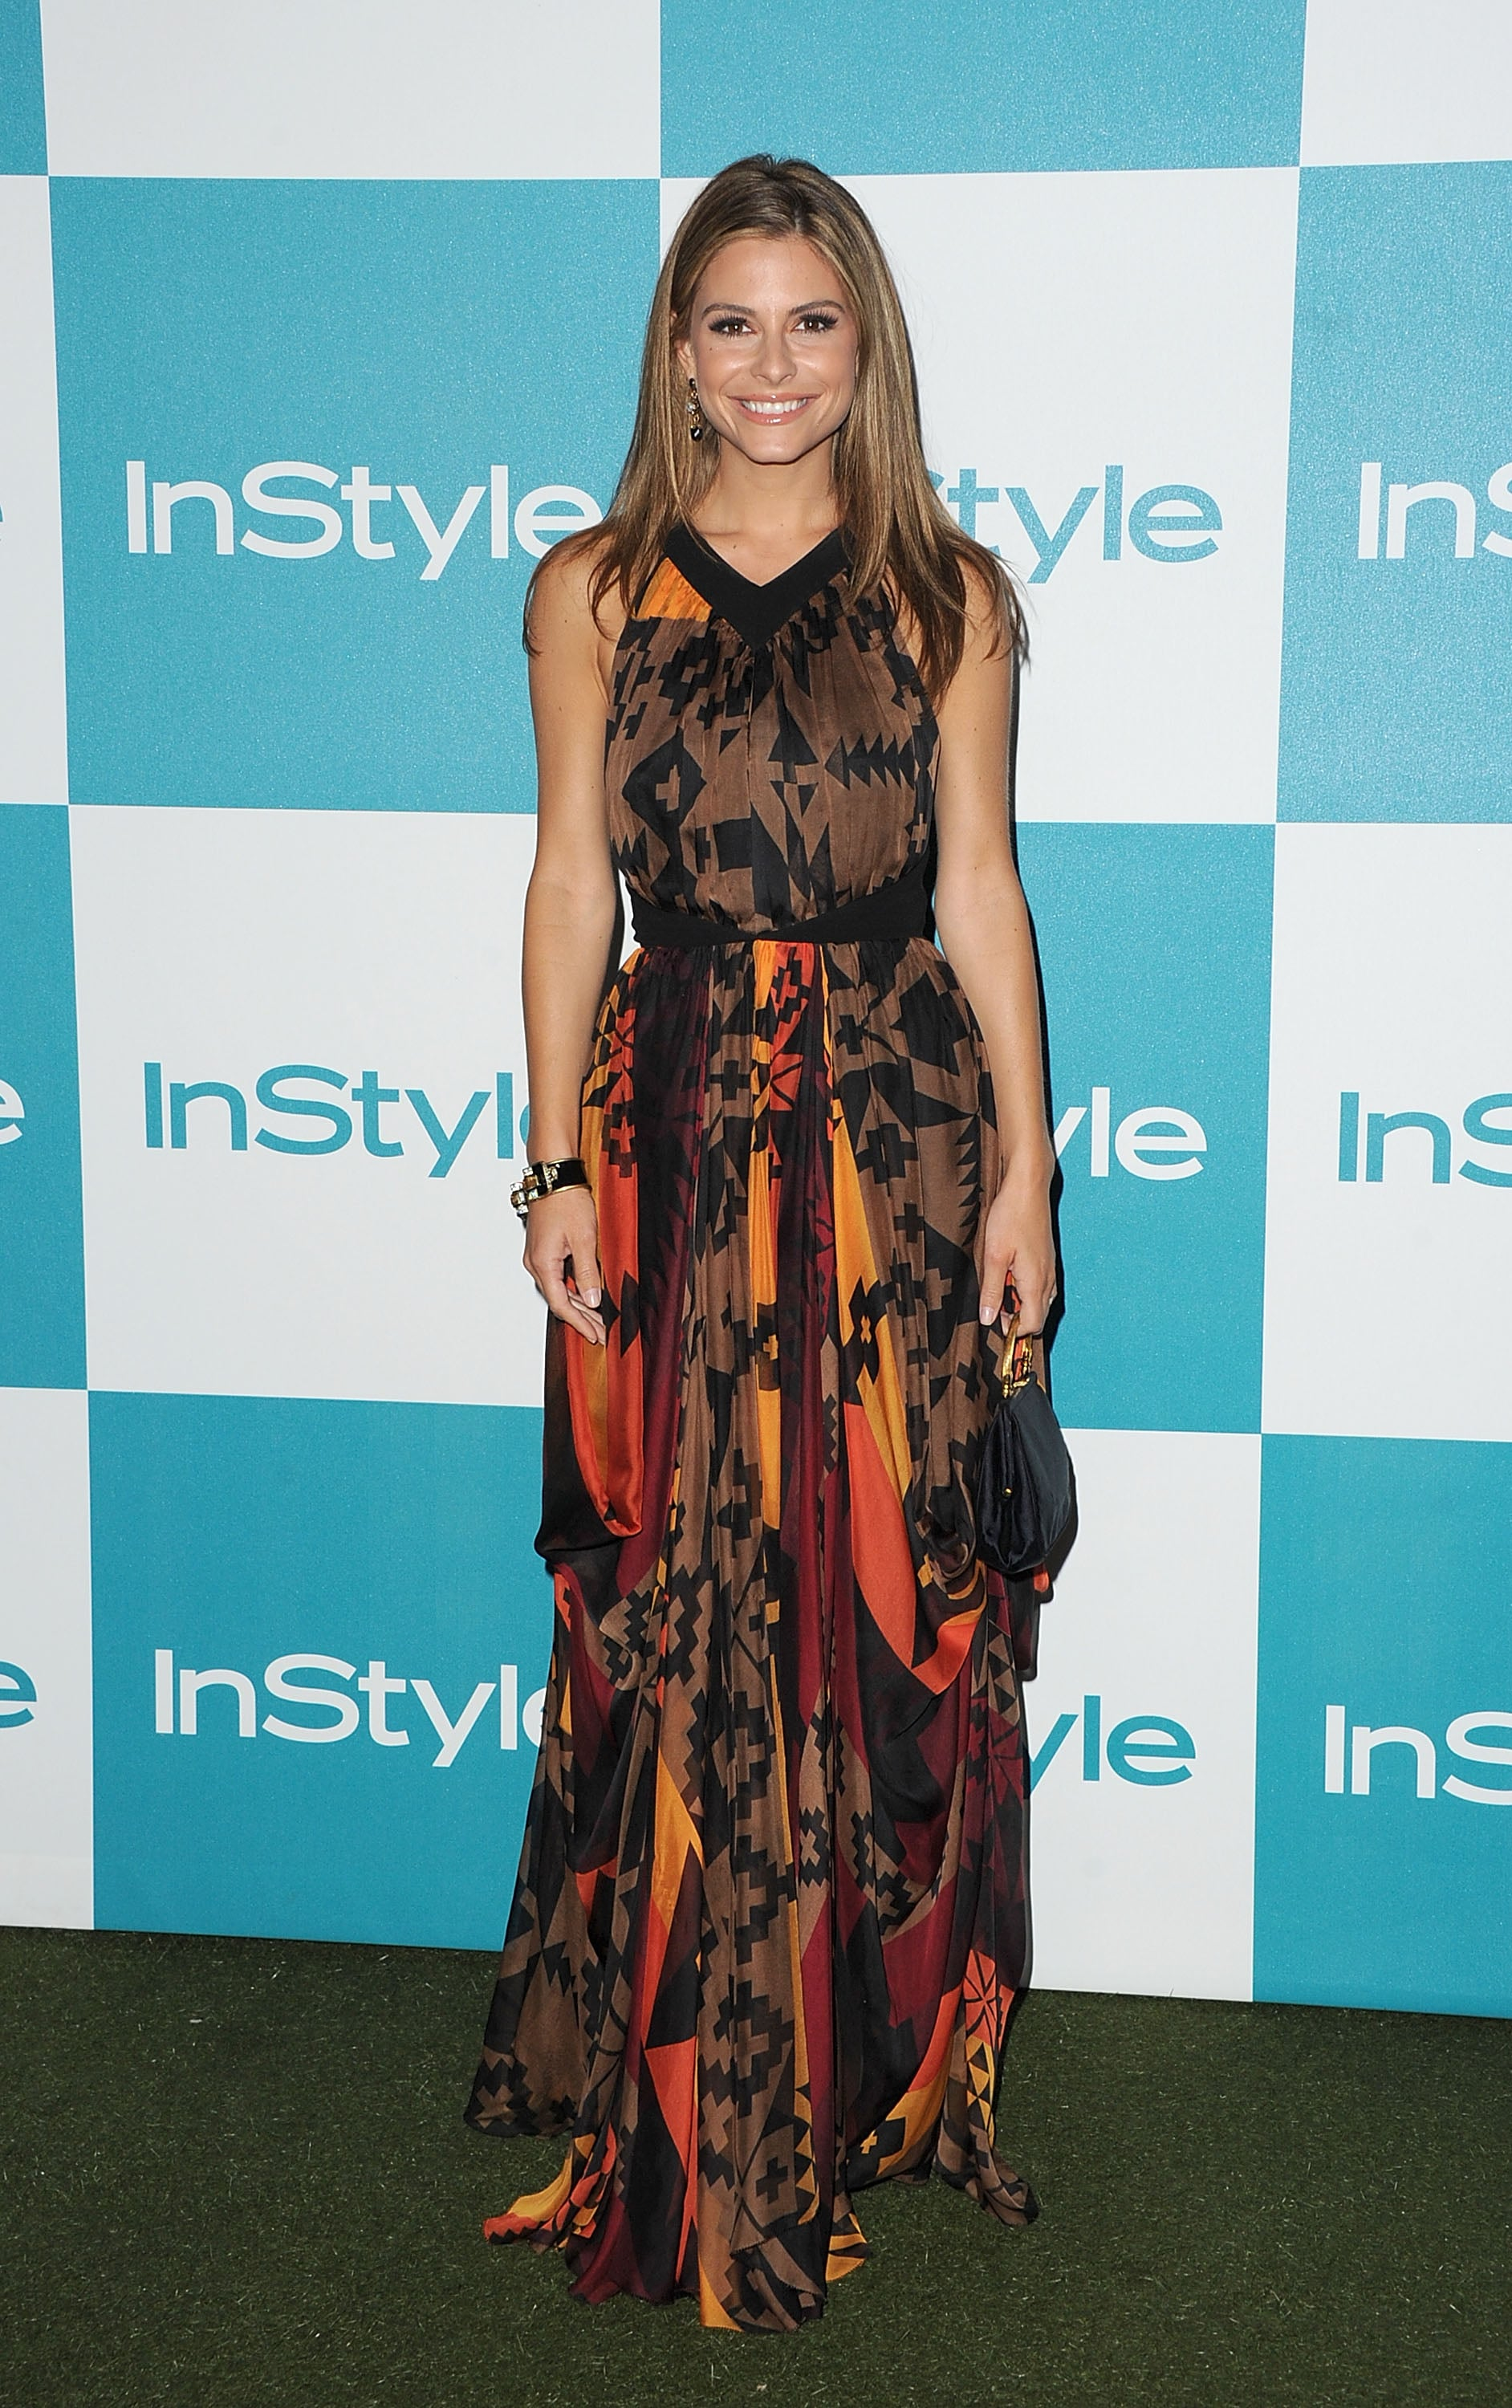 Maria Menounos at the 10th annual InStyle Summer soiree in LAMB.